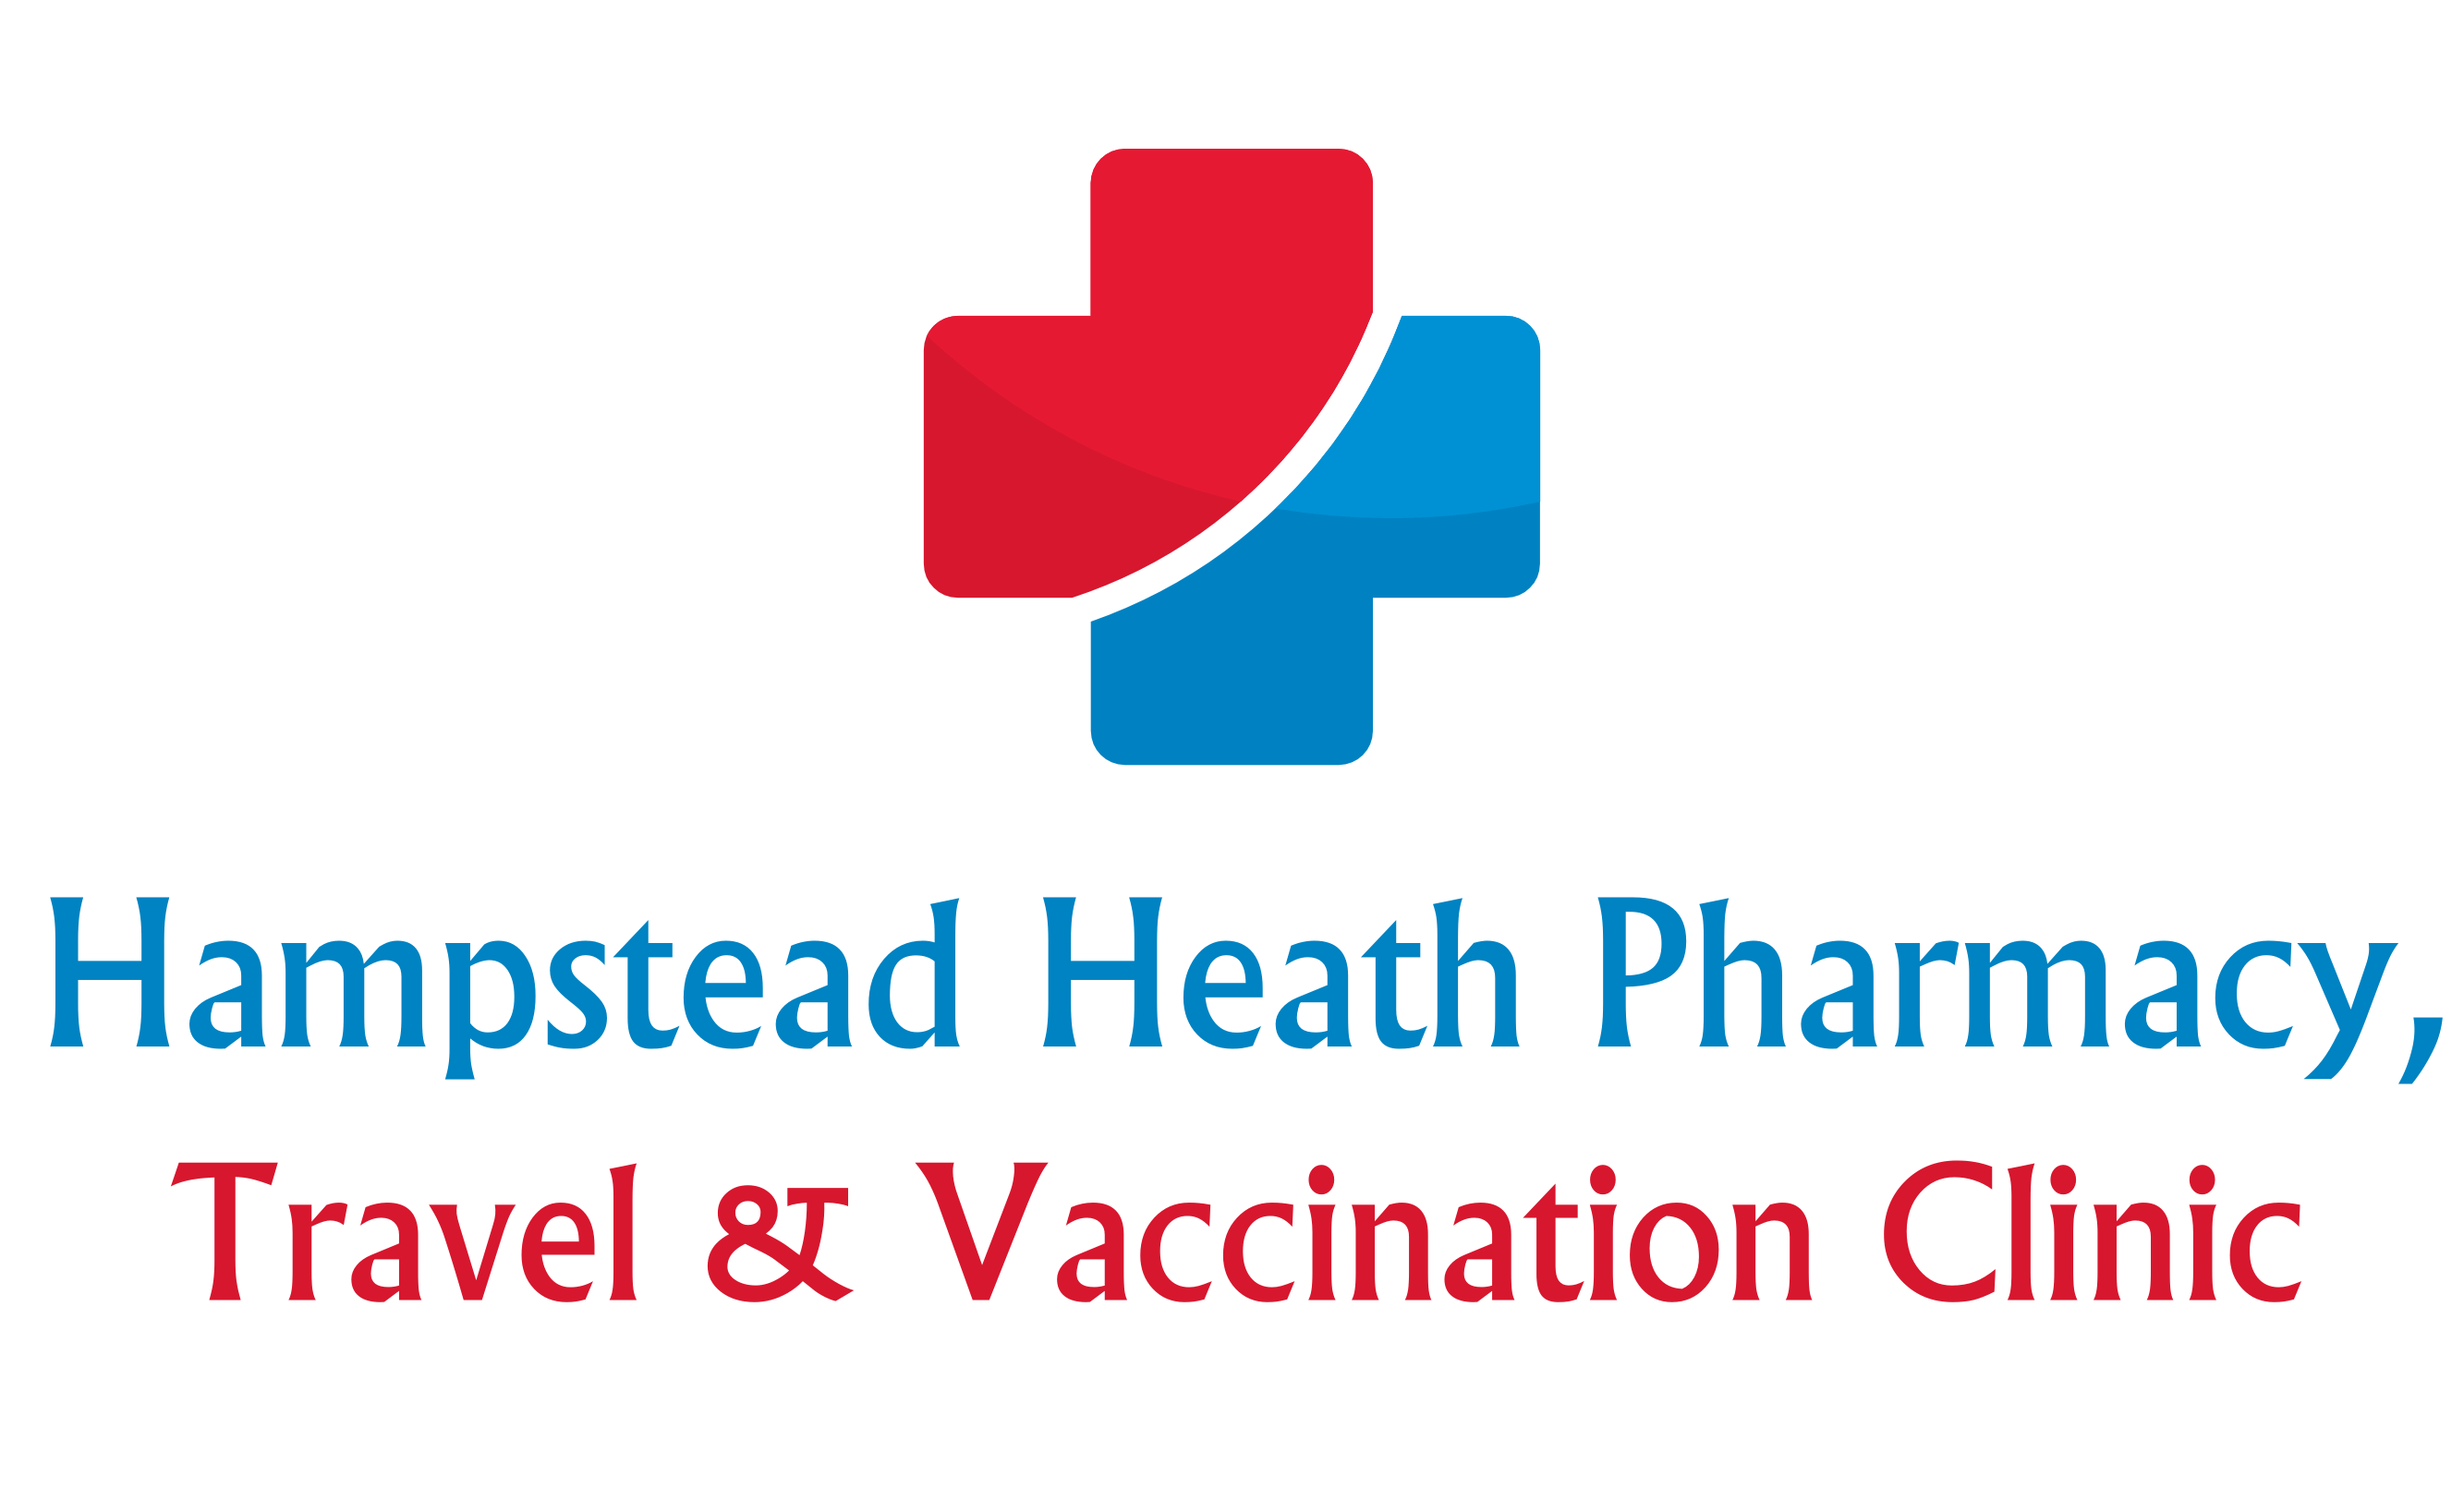 Png travel vaccinations. Vaccination clinic a designated